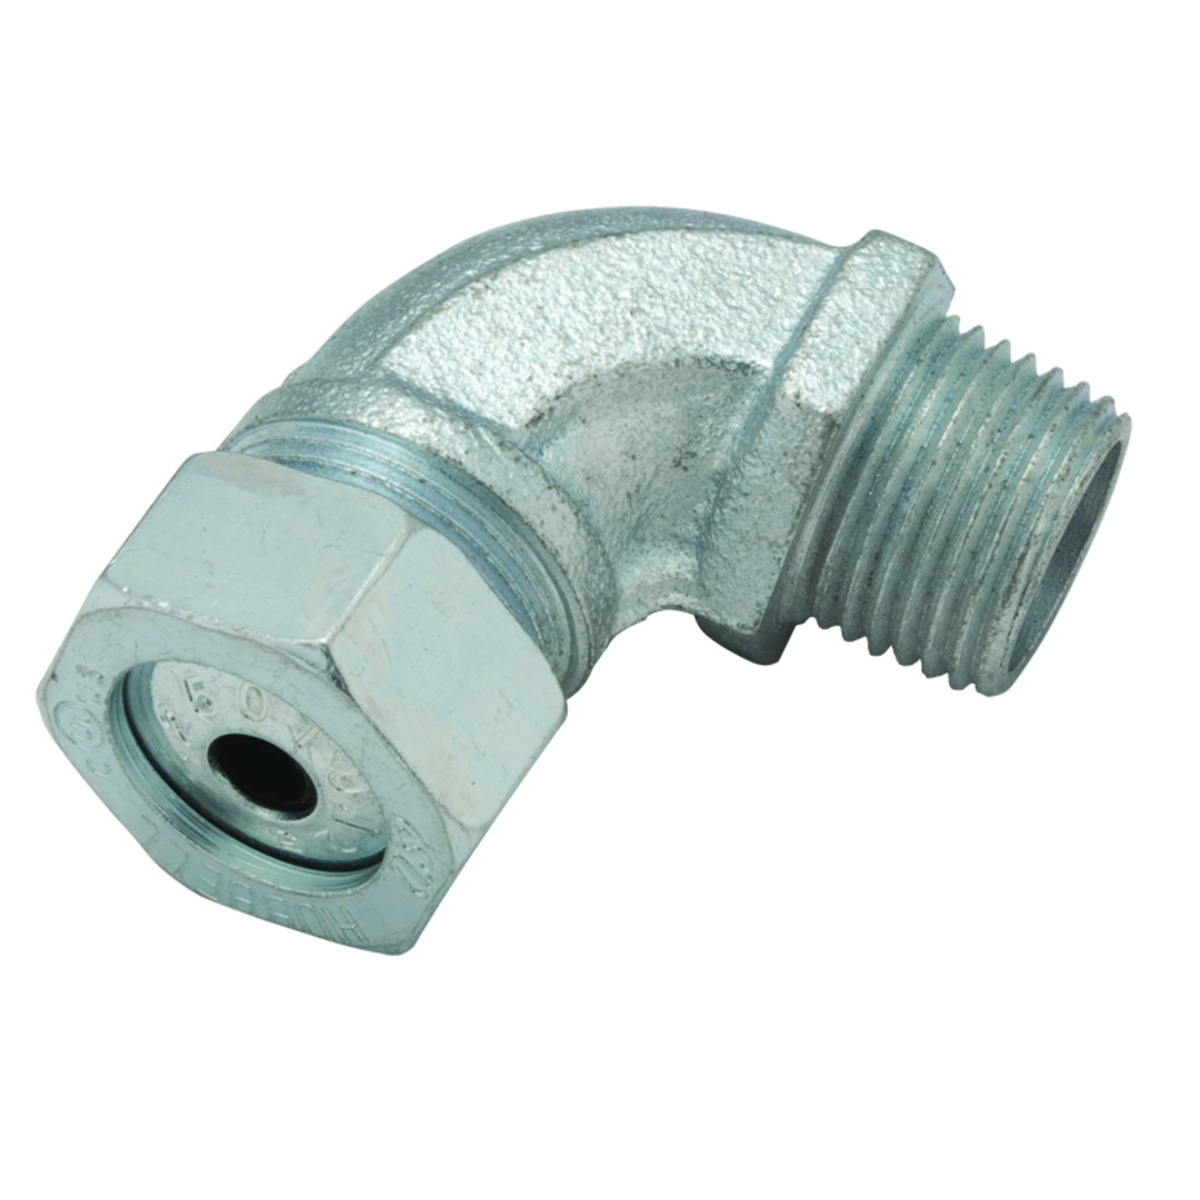 Hubbell-Raco 3793-4 Angled Cord Connector